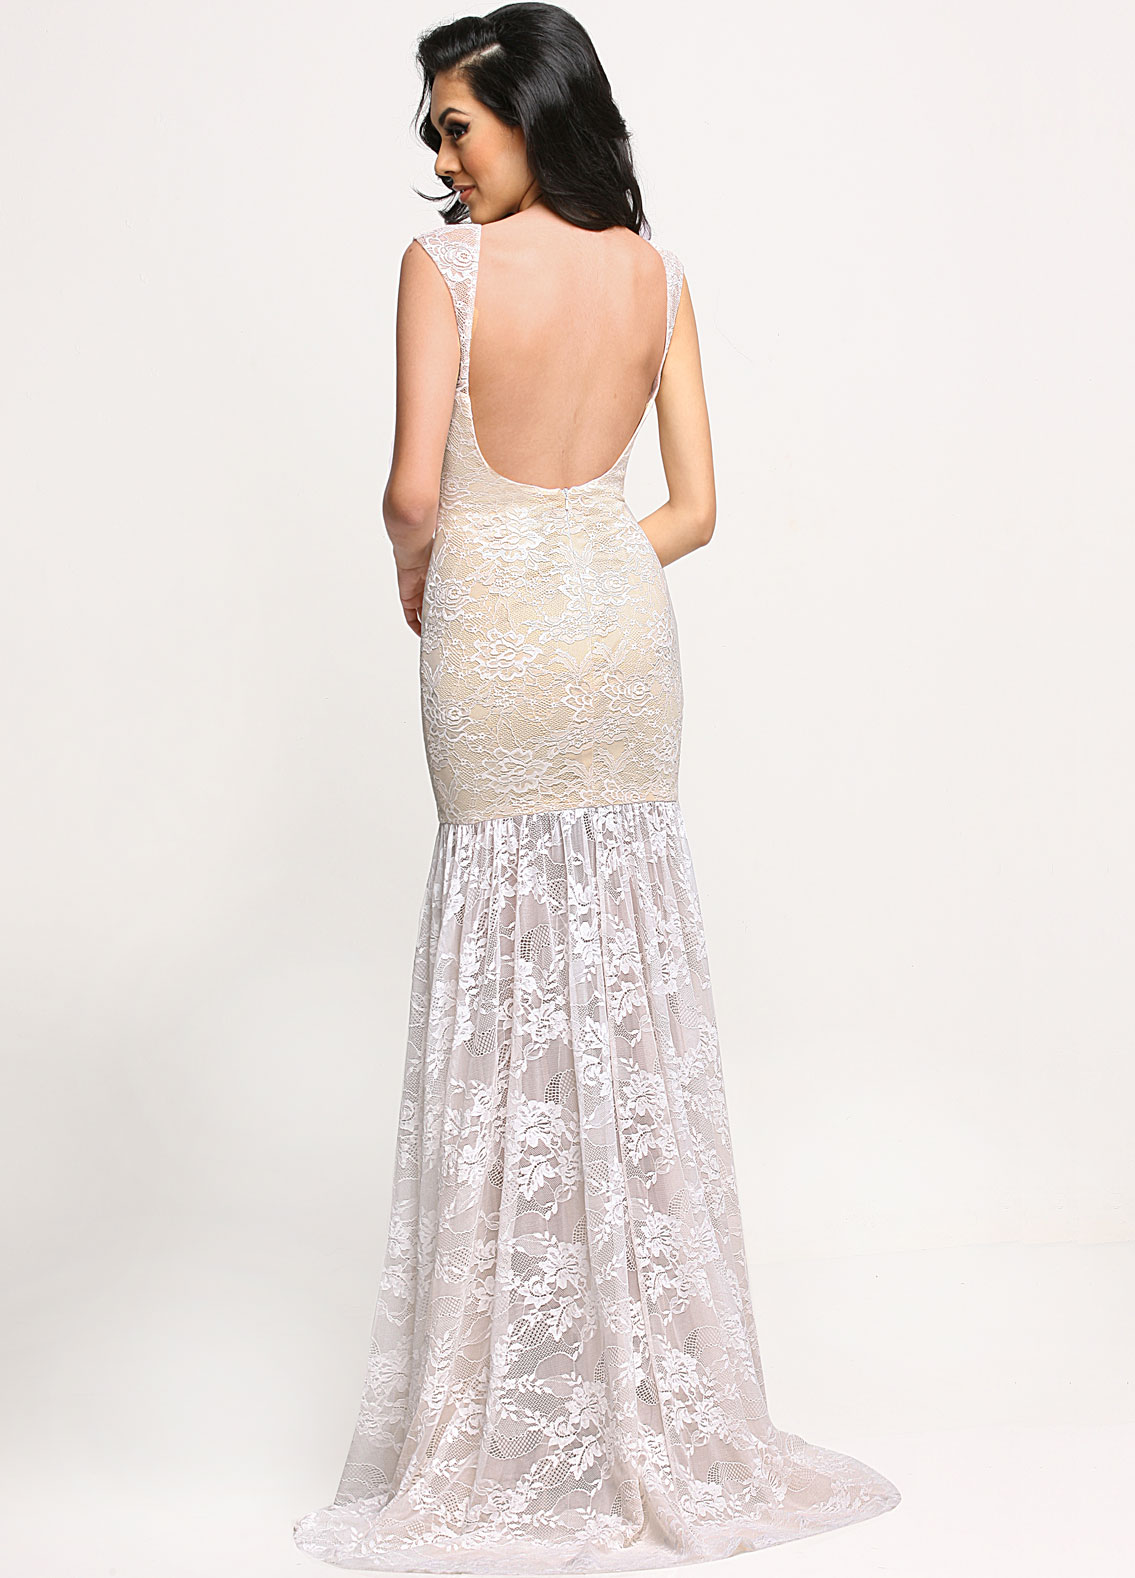 Image showing back view of style #71650